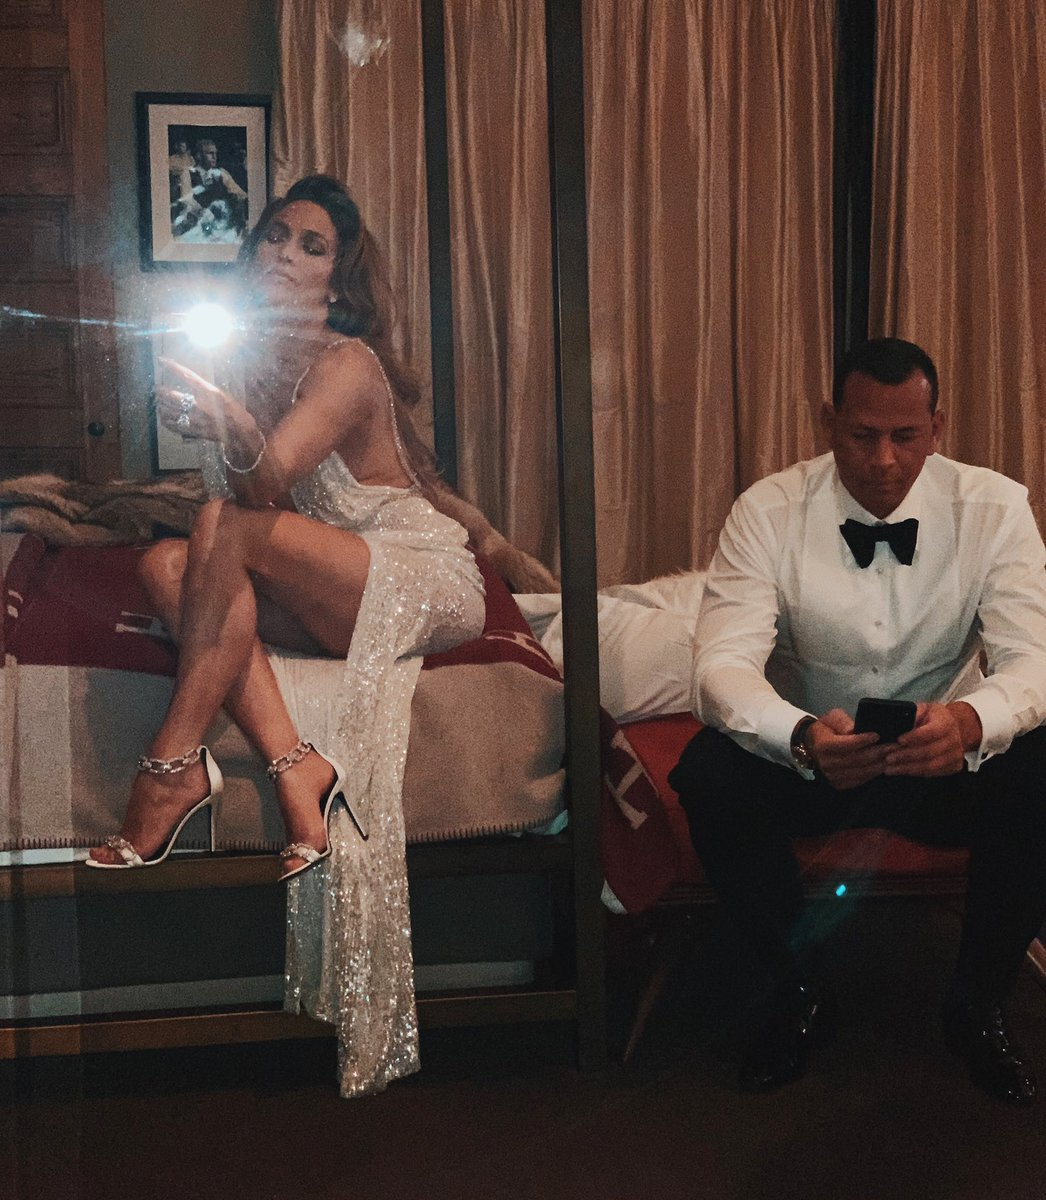 At the end of the night, it's just us. ???? #Grammys2019 @AROD https://t.co/Zjwjq96aDx